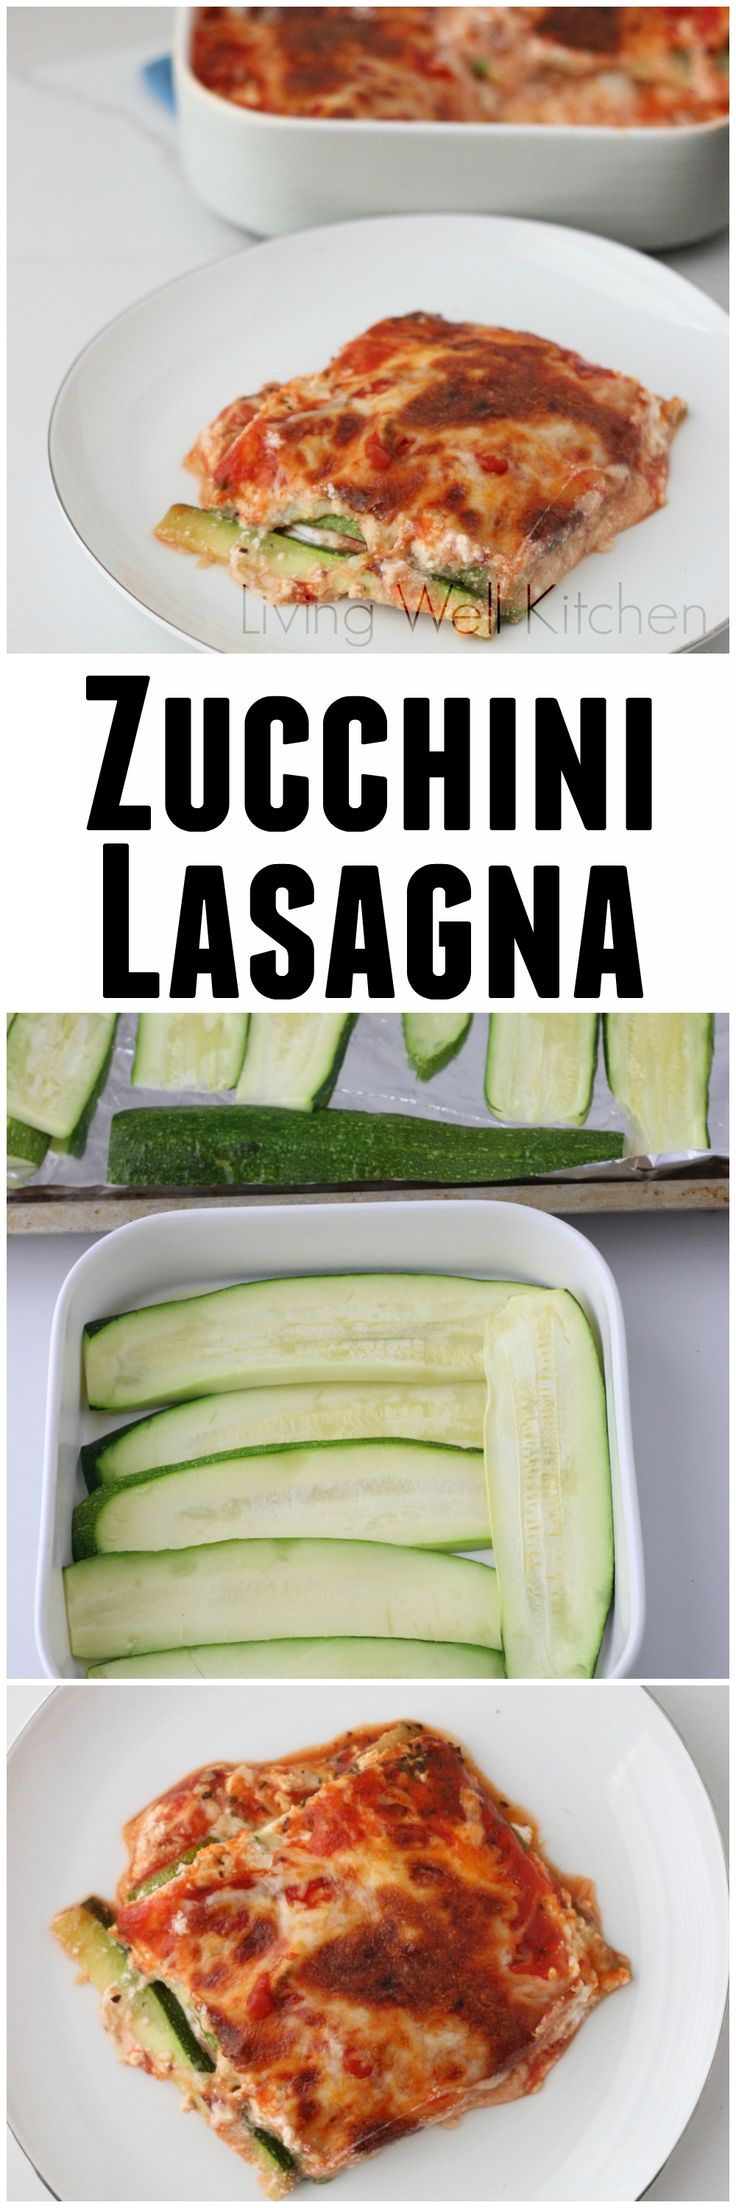 A fresh, summer take on a comfort food classic: Zucchini Lasagna from Living Well Kitchen @Meme Inge